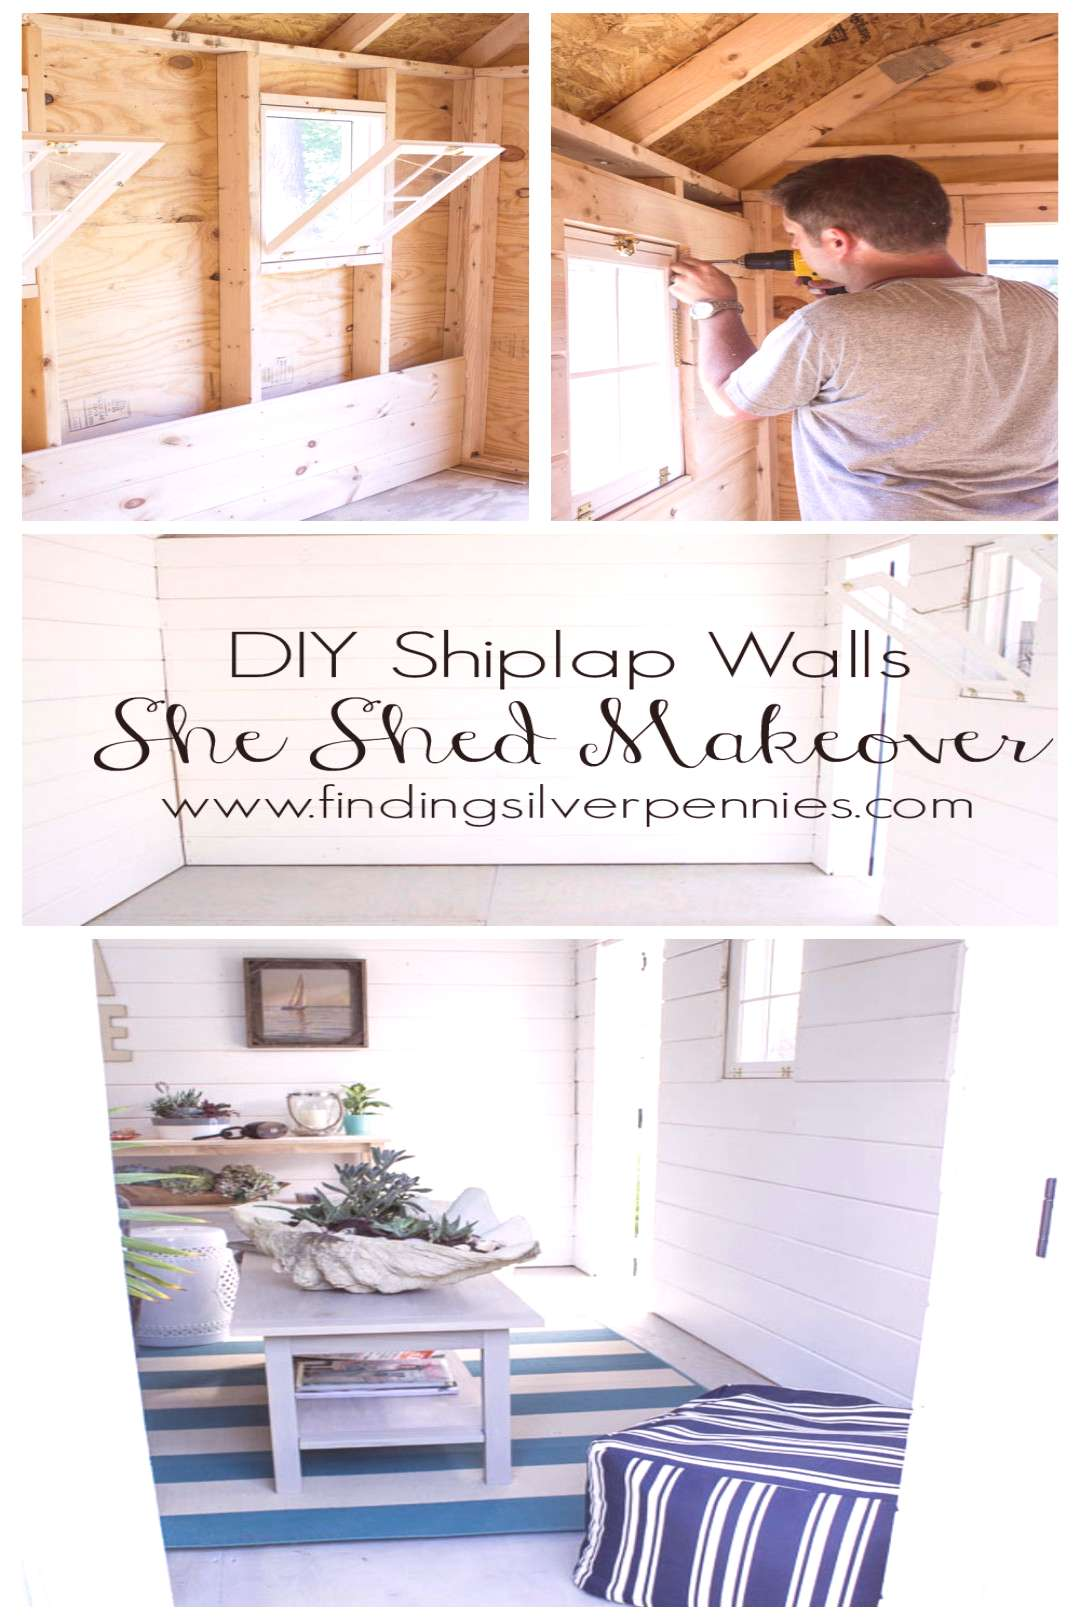 She Shed DIY Shiplap Walls - Finding Silver Pennies